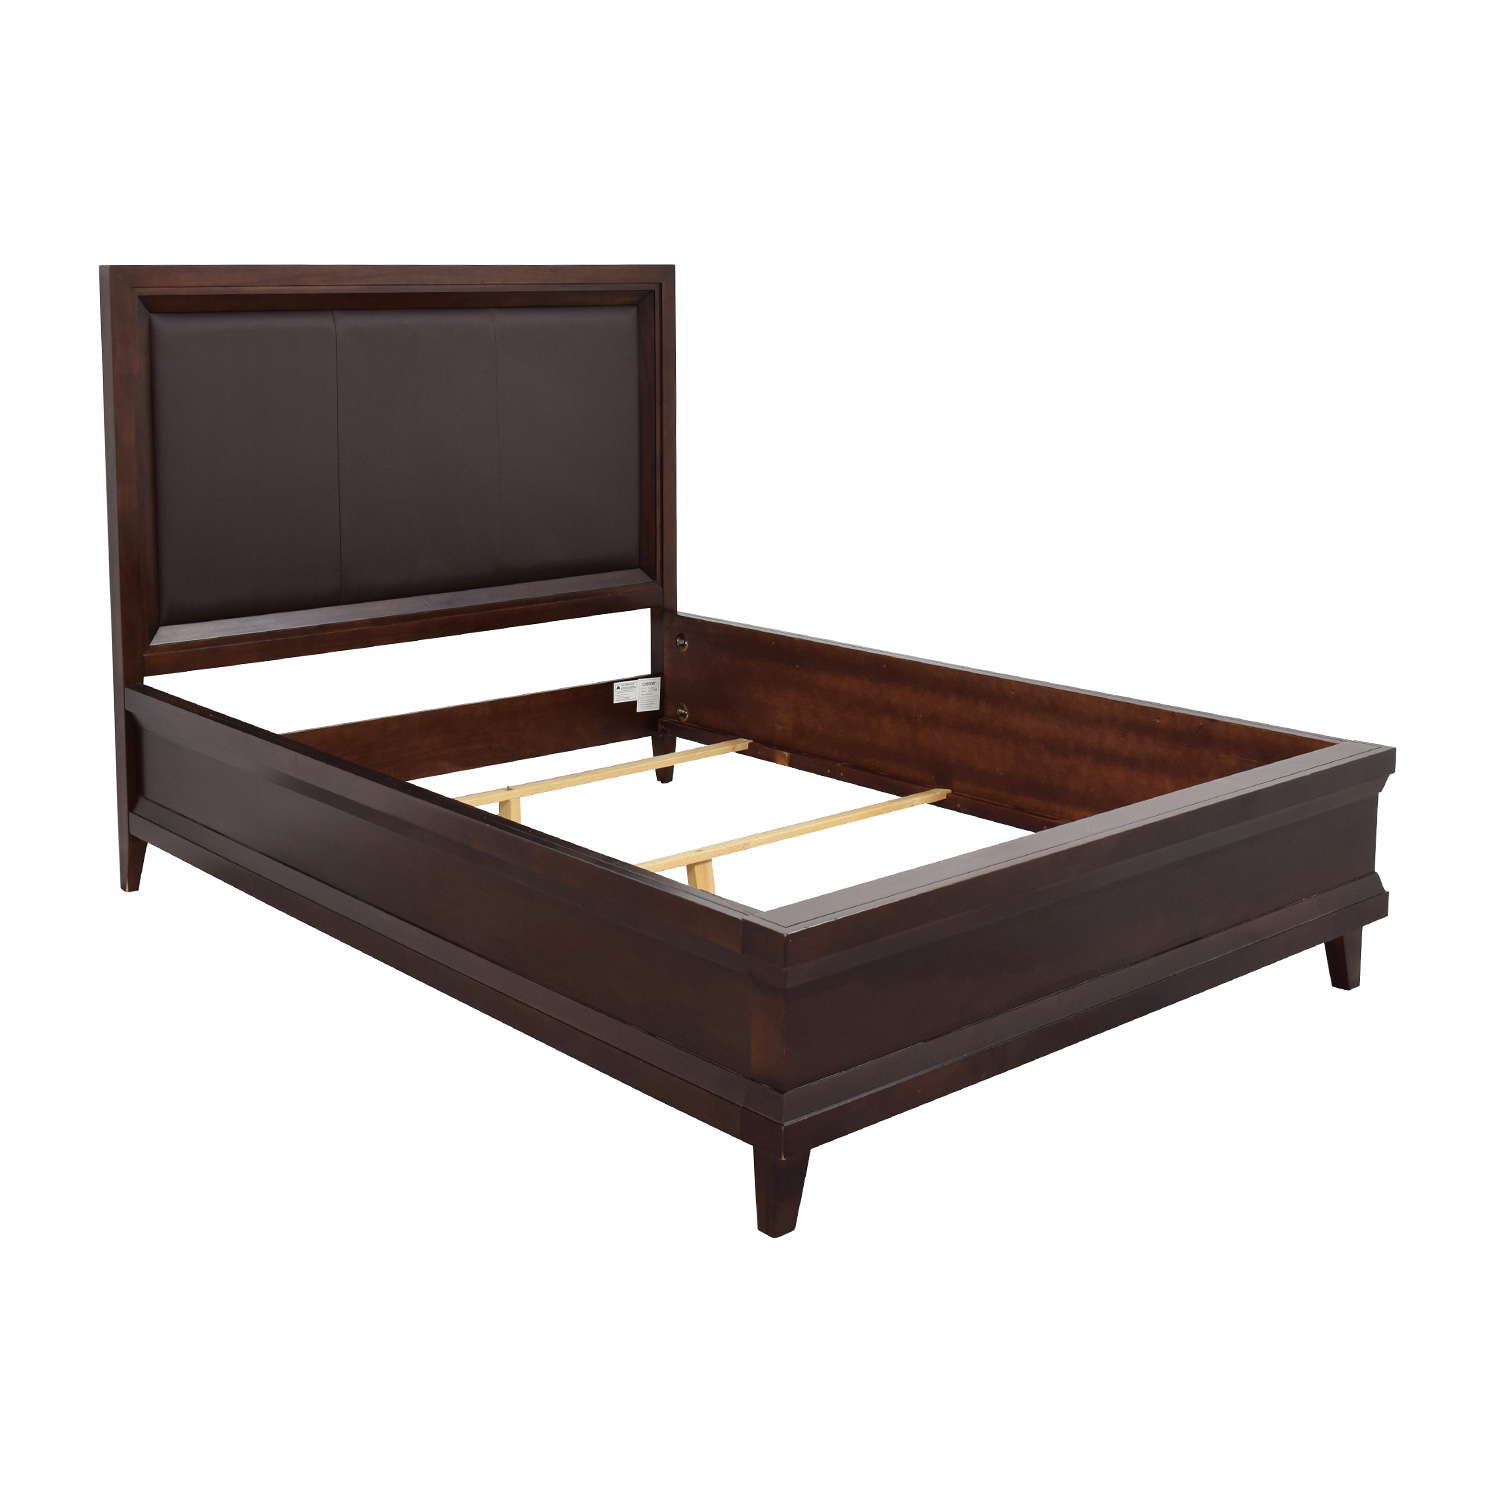 Raymour and Flanigan Raymour and Flanigan Dark Brown Queen Bed Frame for sale